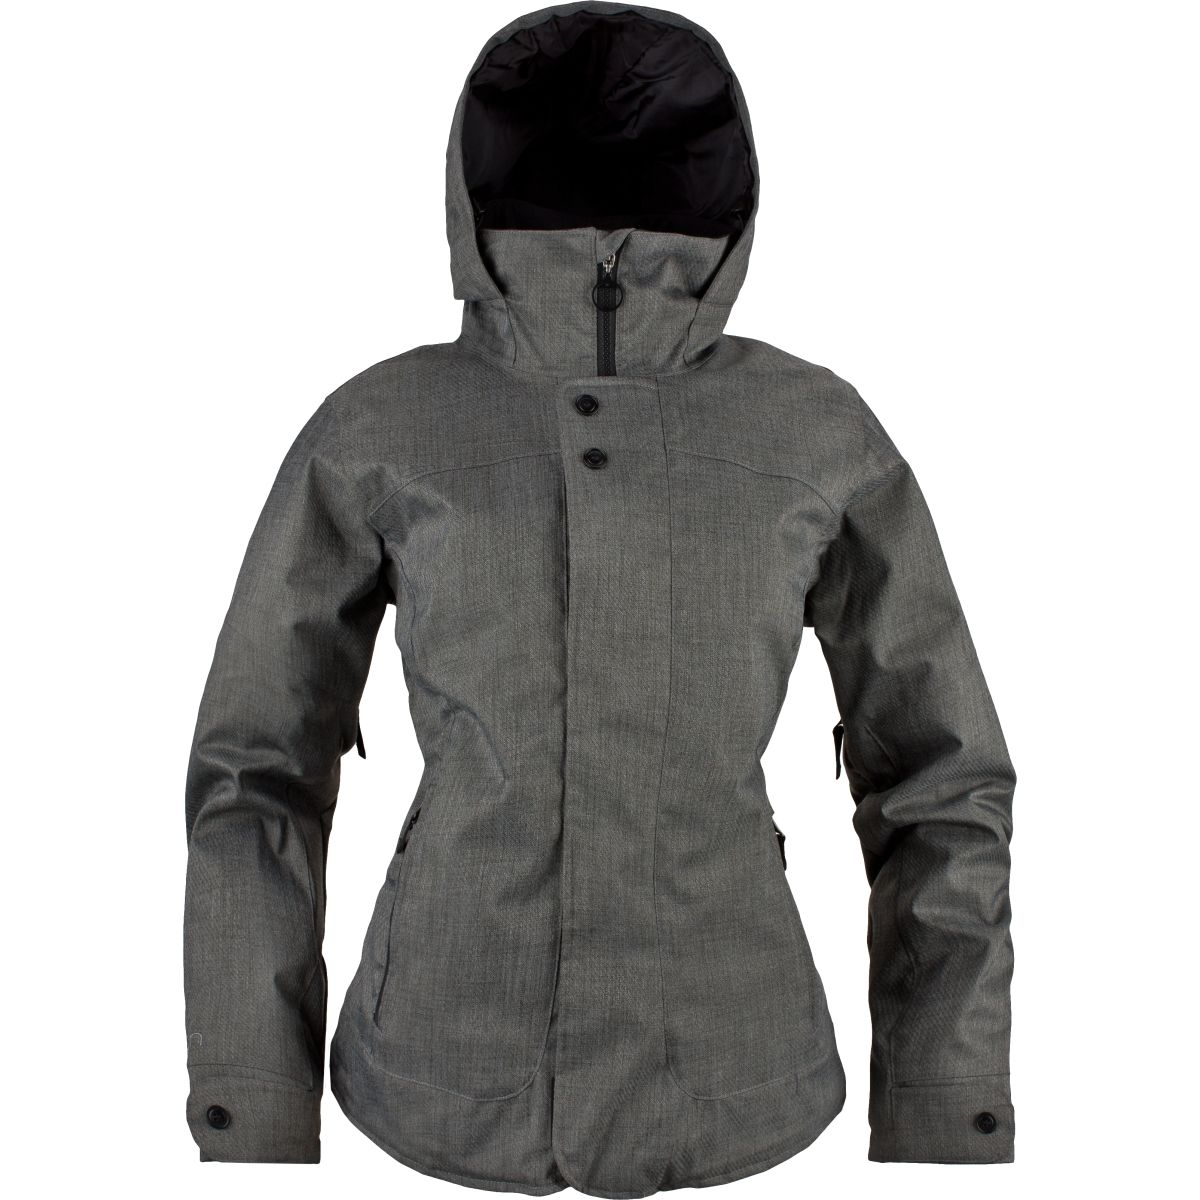 Discounted North Face Jackets